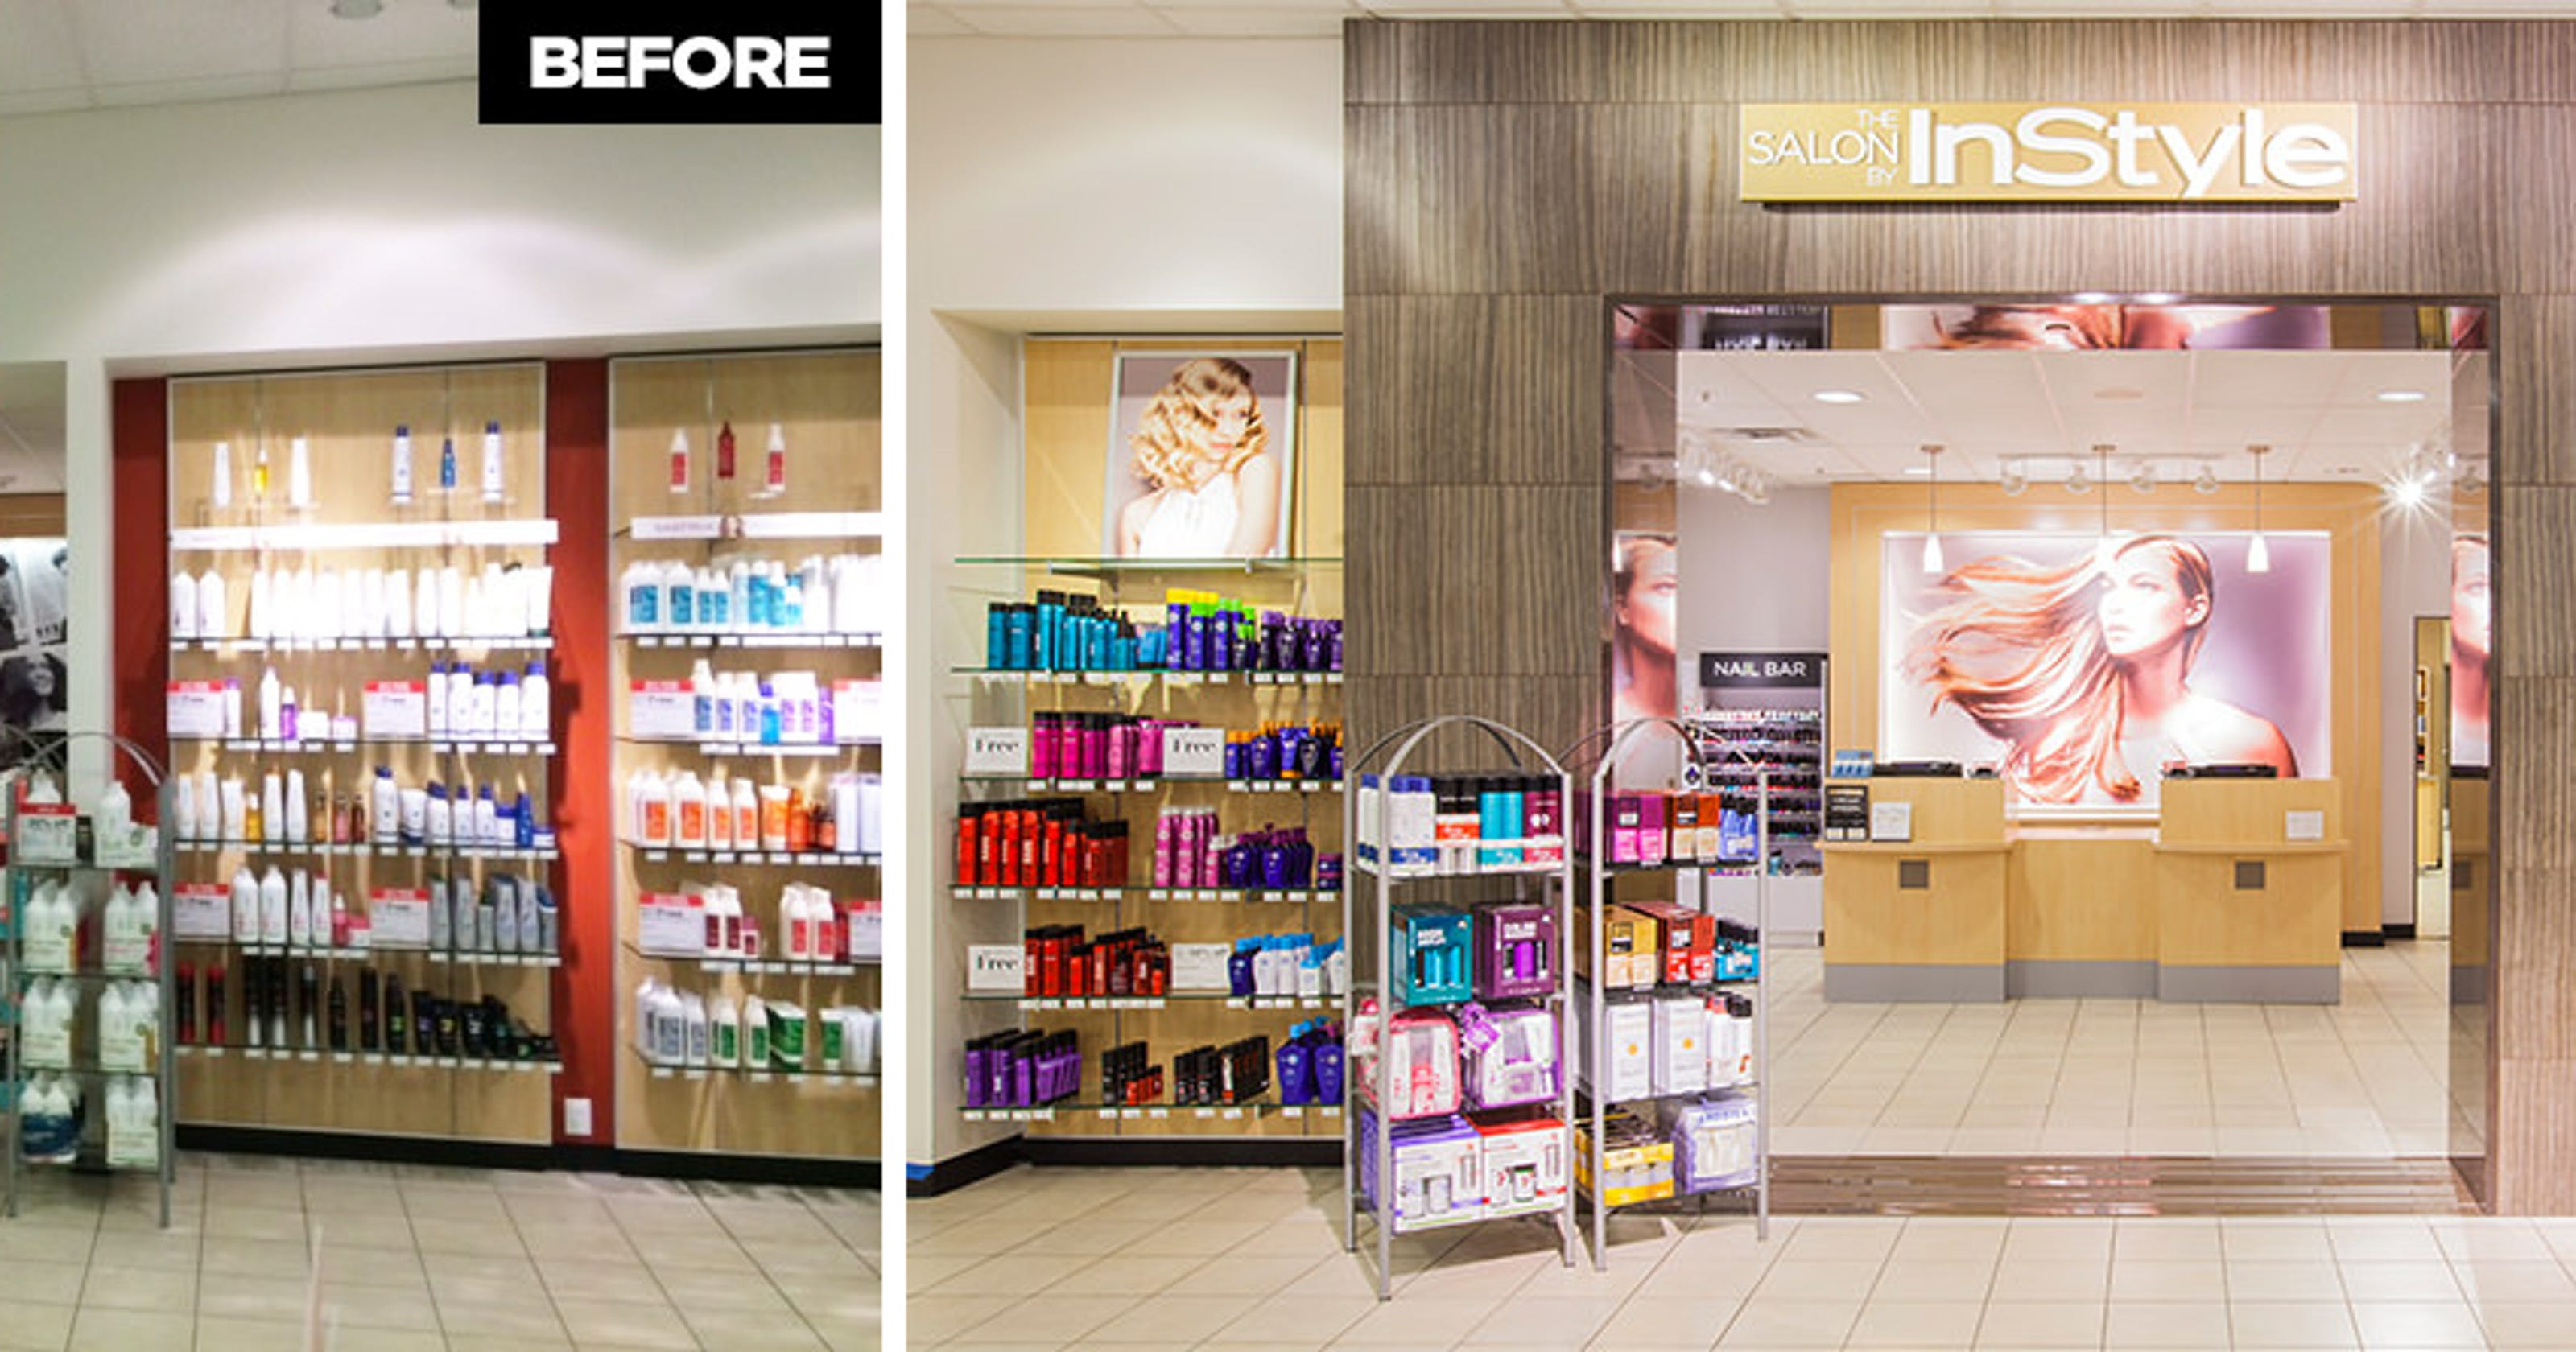 J.C. Penney to update salon at Delaware mall